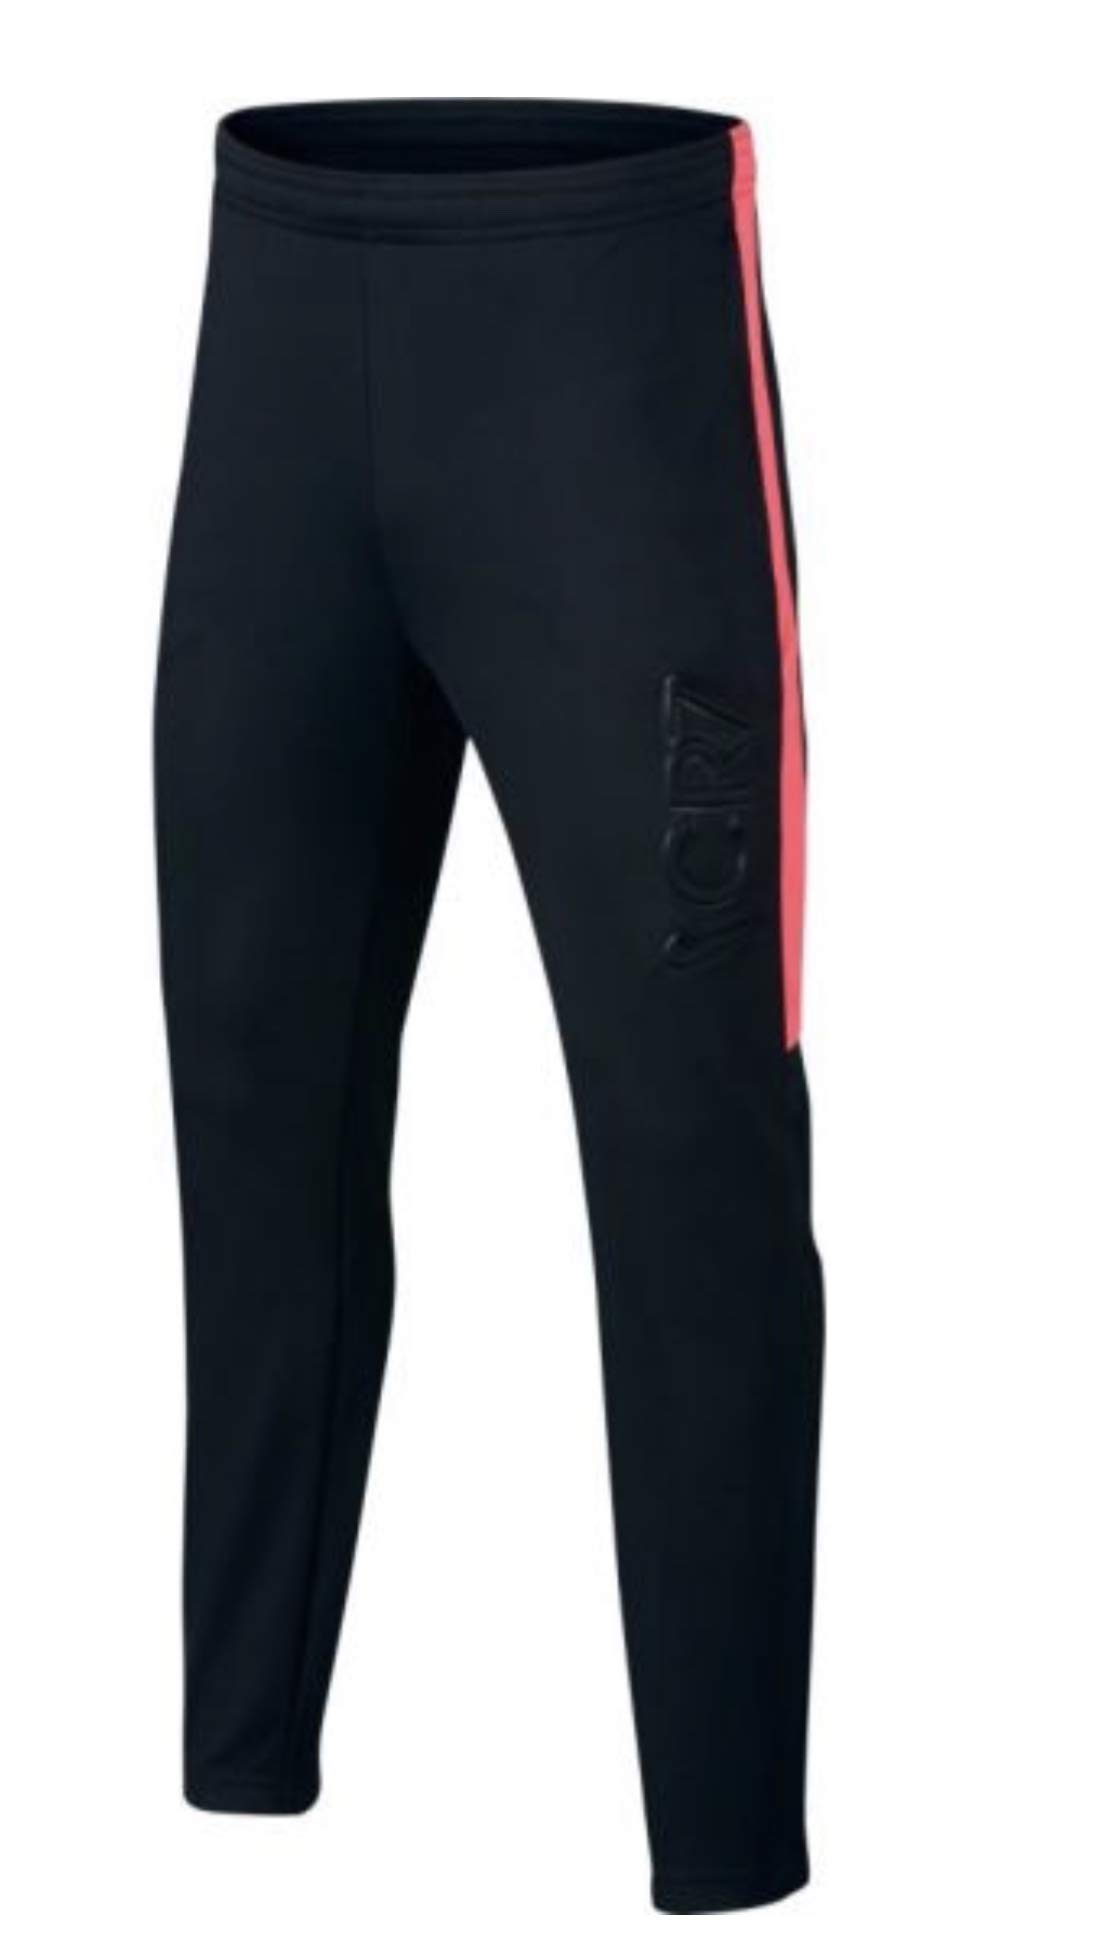 CR7 B NK DRY PANT KPZ Boys Football Pants❗️Ships directly from Nike❗️ by Nike